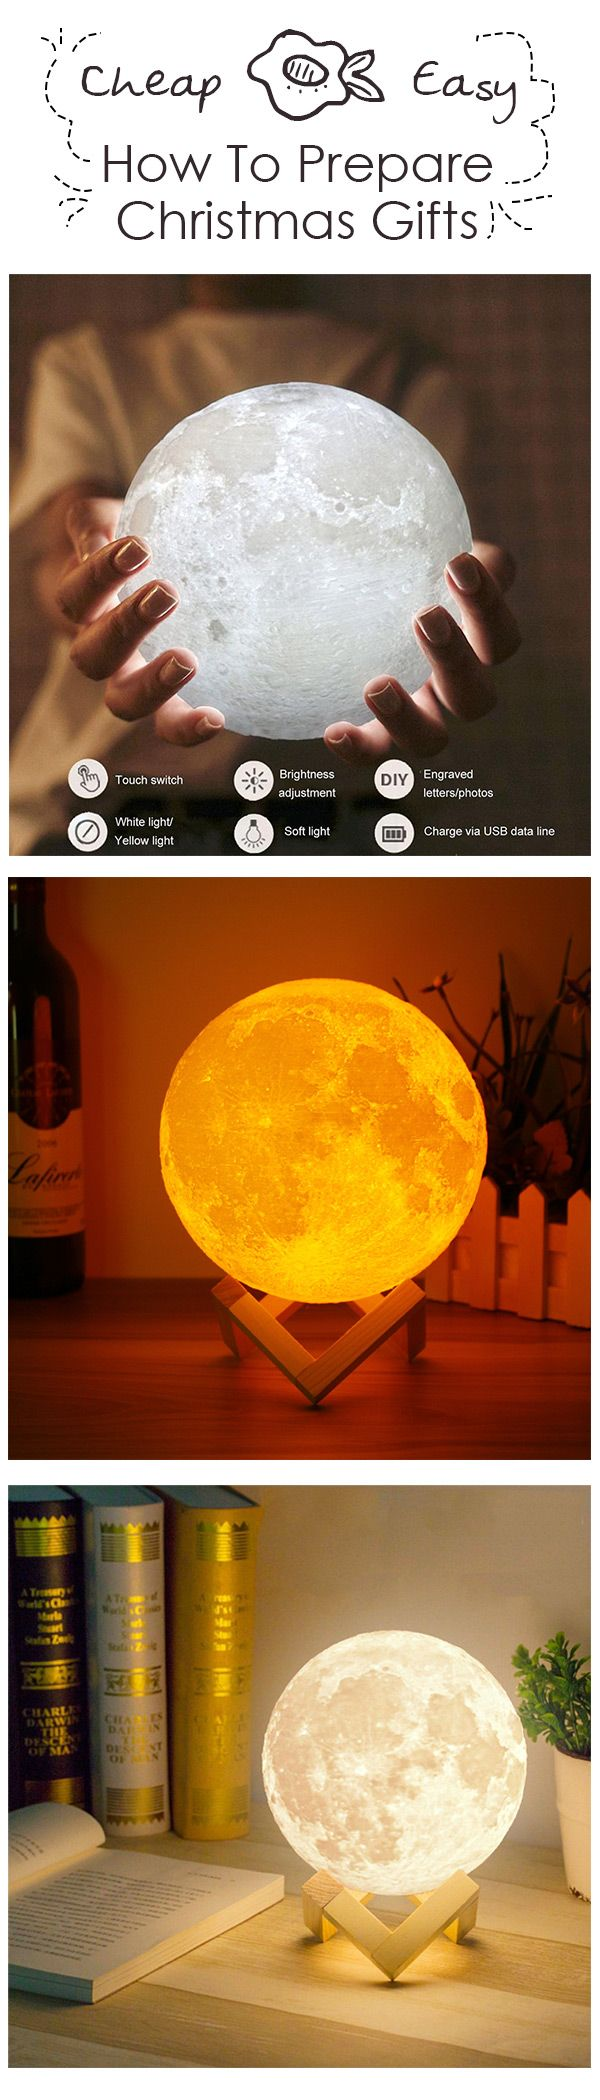 Bring The Moon Into Your Home - Realistic Magical Moon Lamps#christmas #homedecor #Home #lamp #lighting #led #ledlights #newchic #new #CHIC